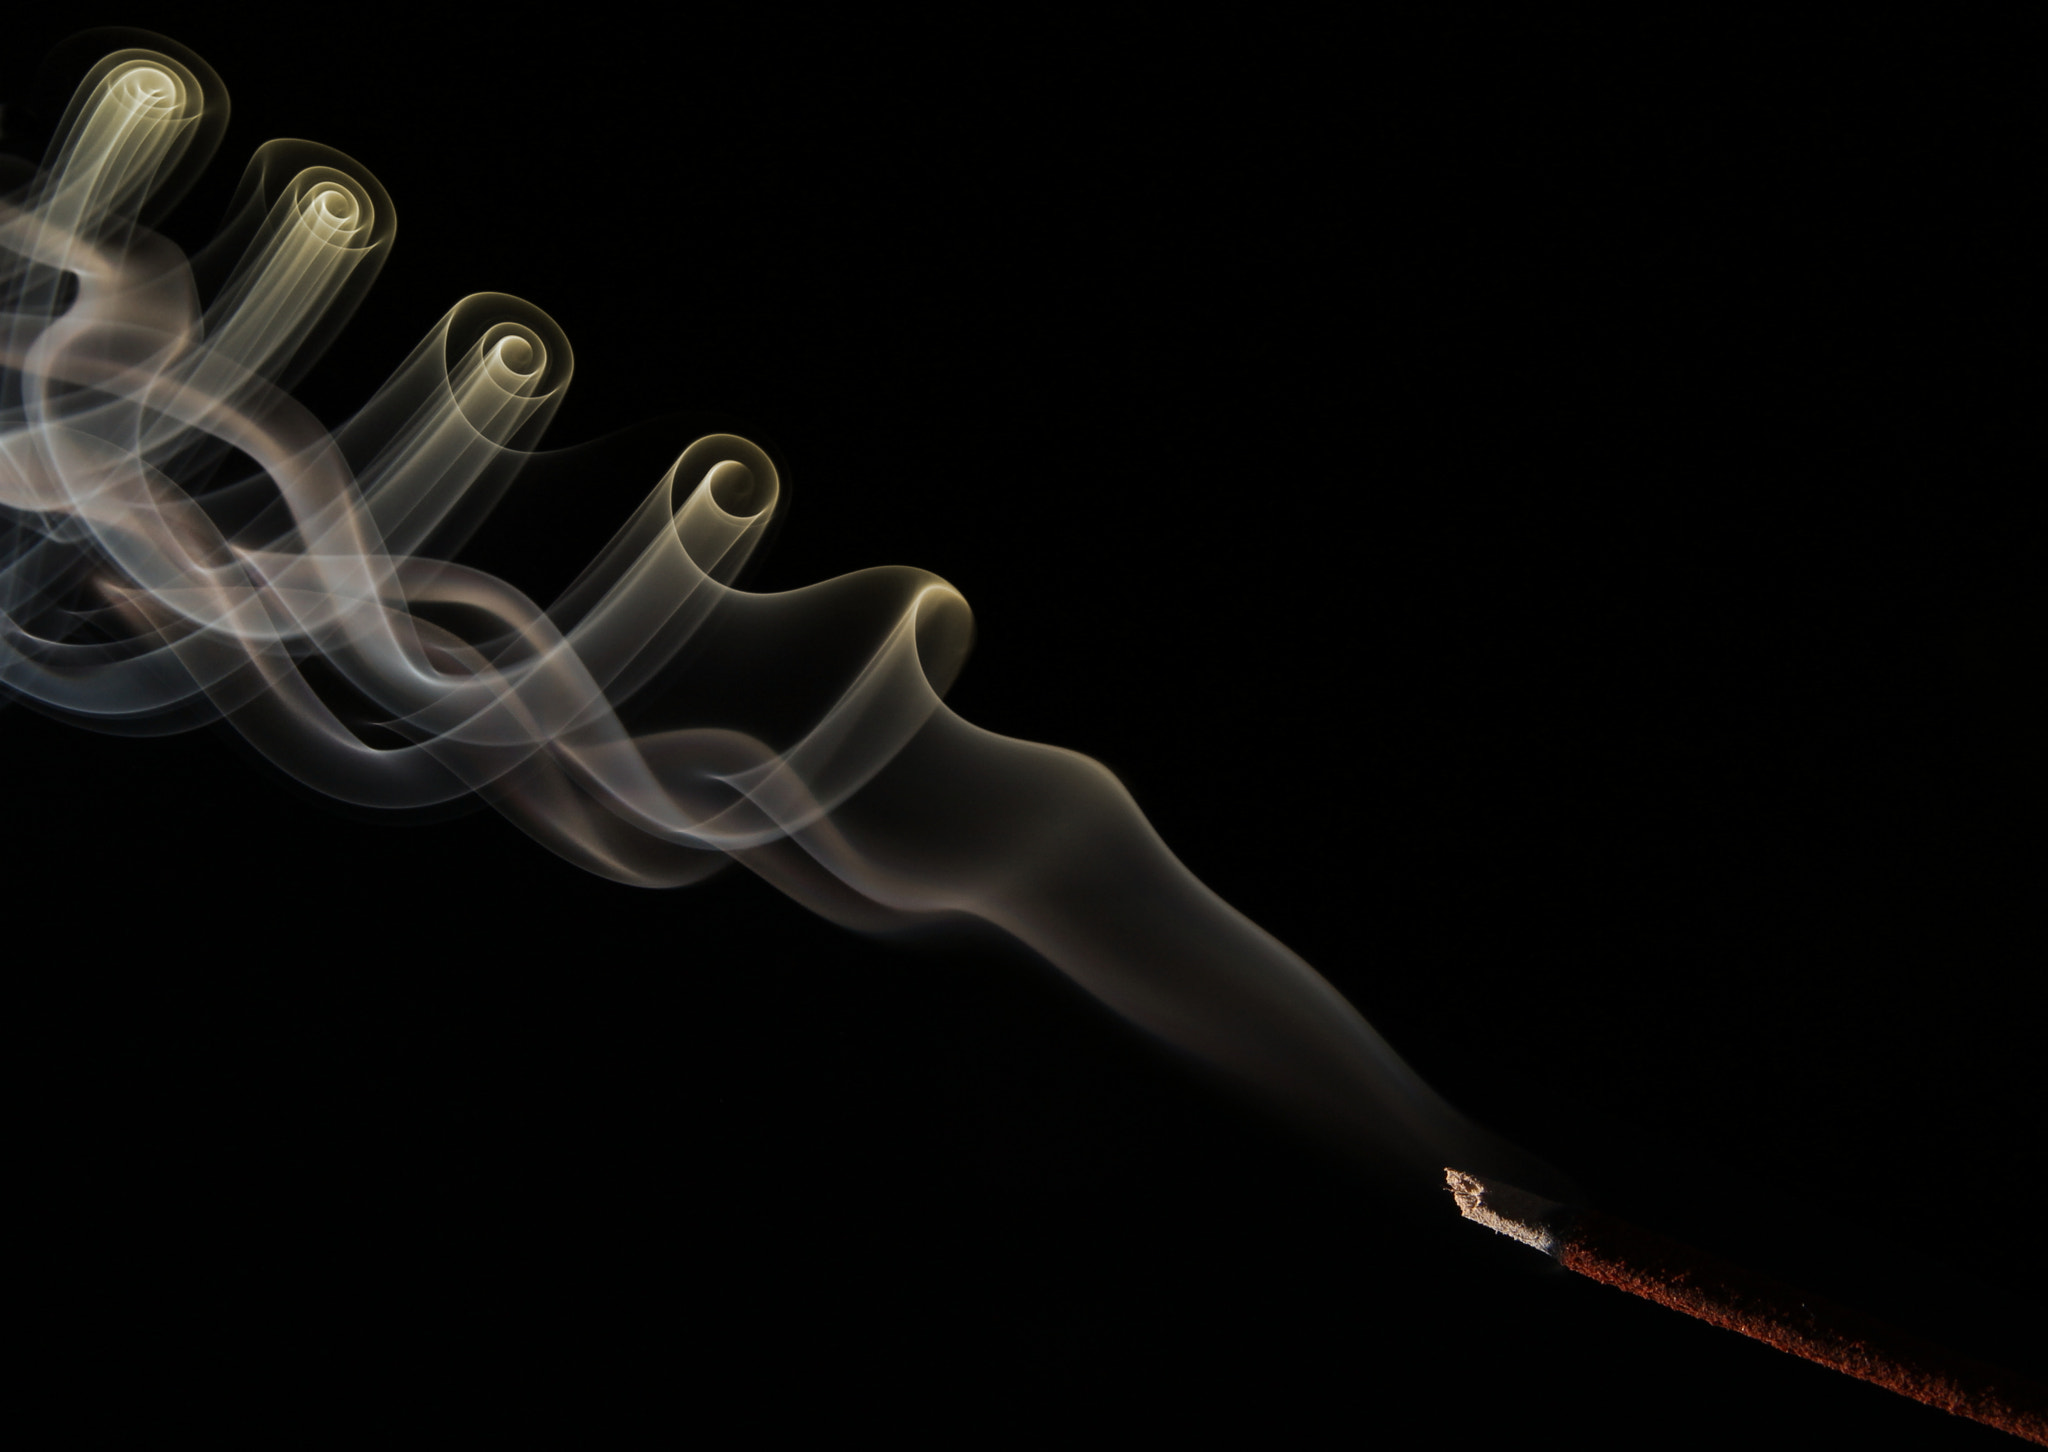 Photograph Smoke At Its Finest by Nils Limberg on 500px